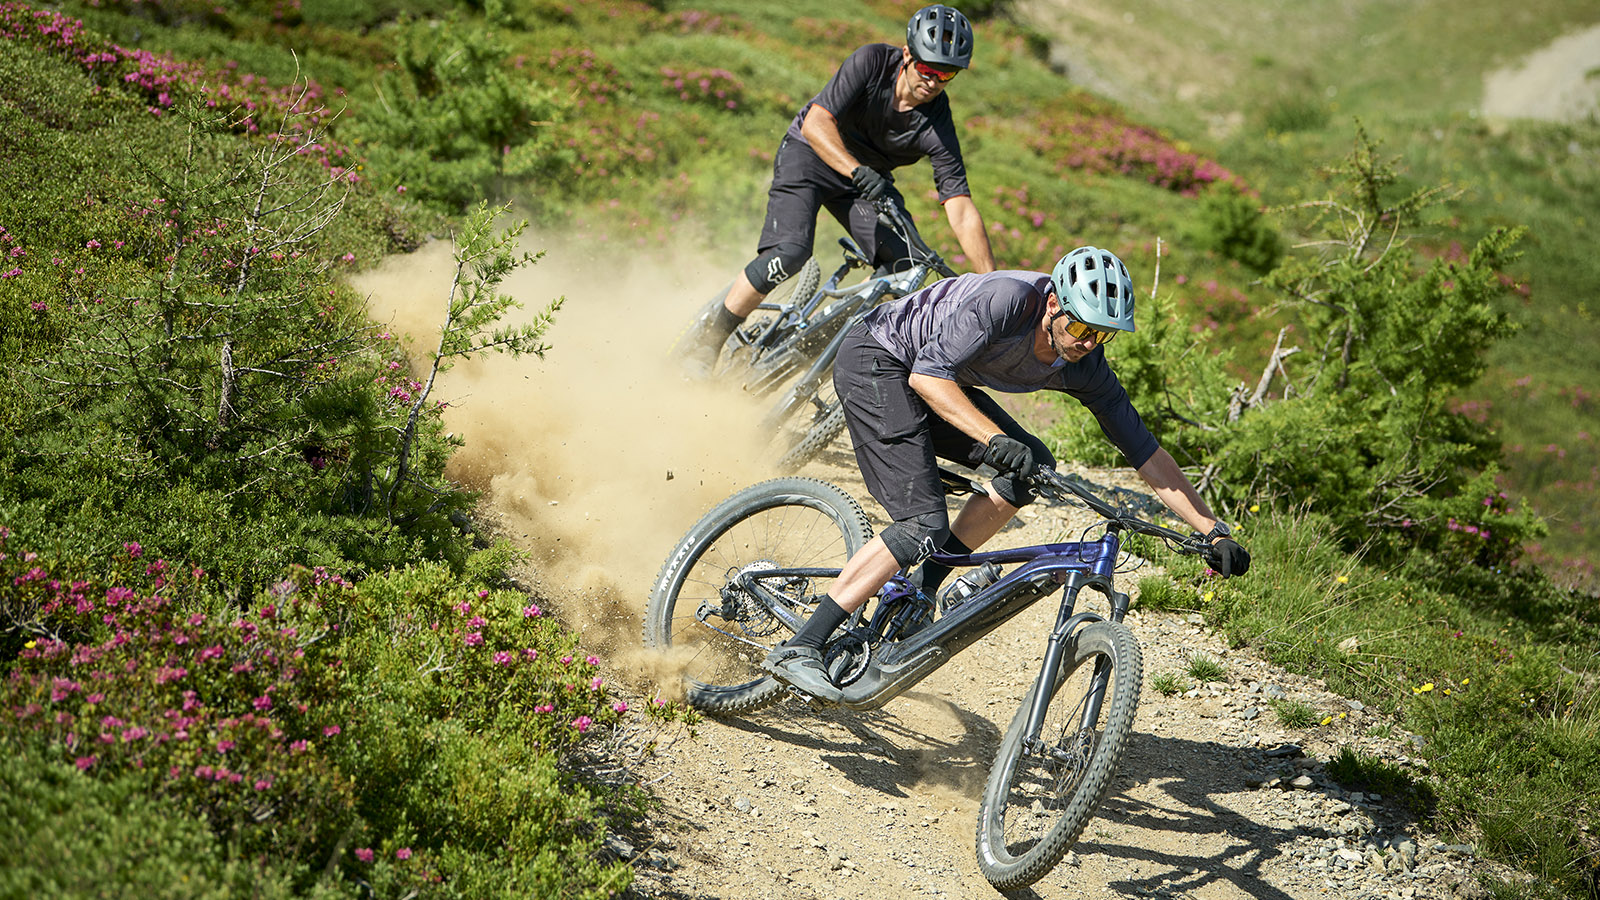 Get rowdy on Giant's new Trance X E+ Pro 29